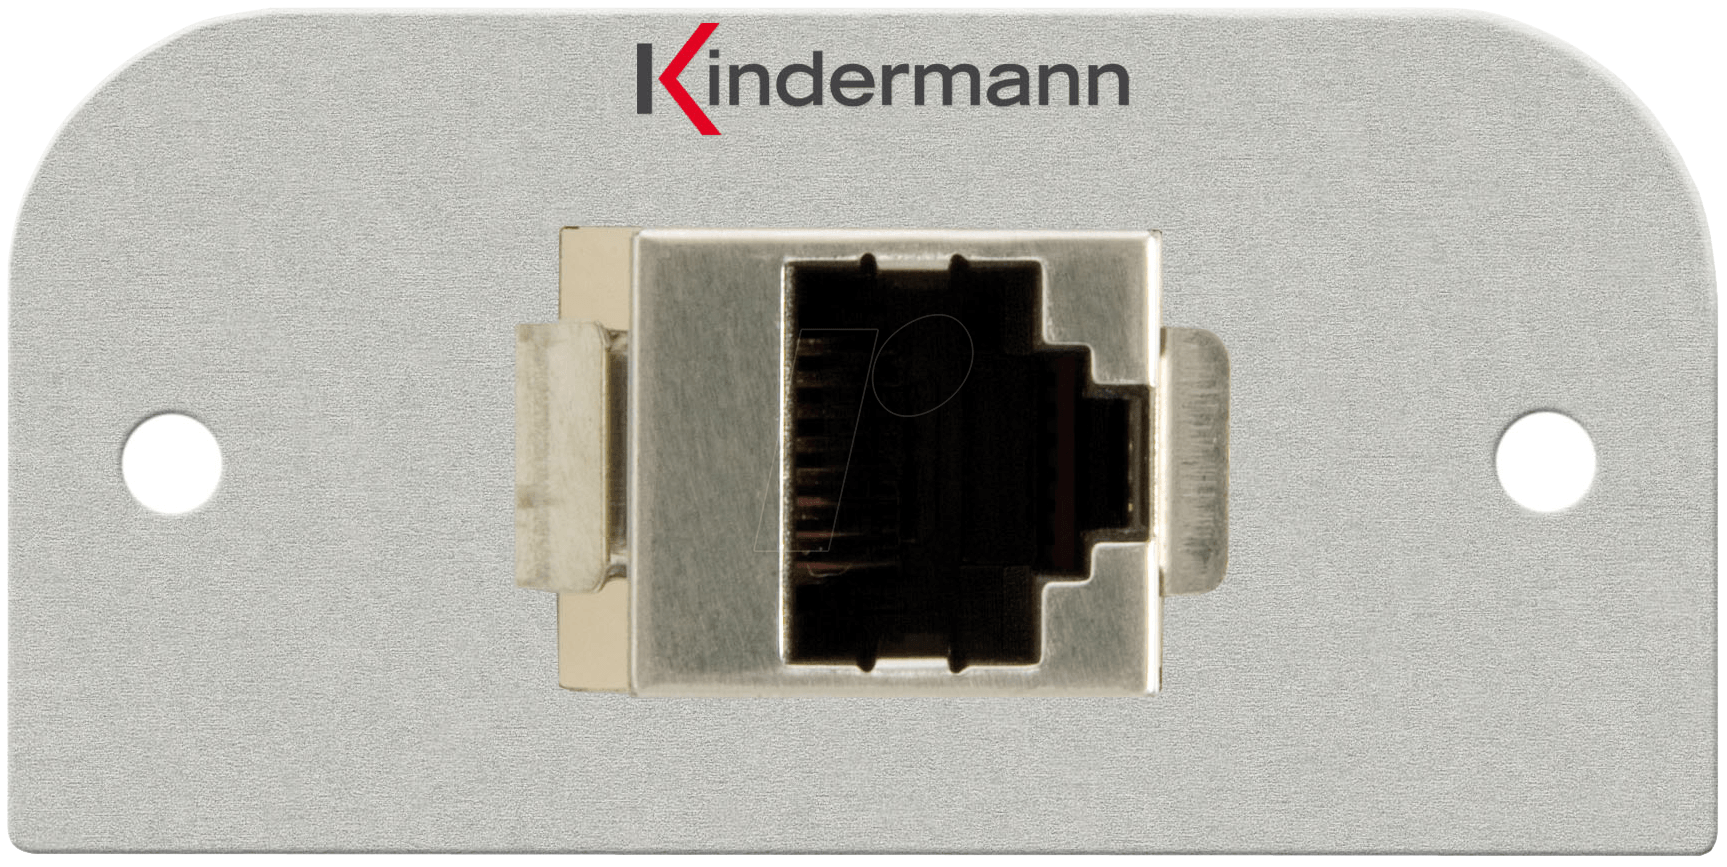 Kmas 7441 523 Data Connection Rj45 223 At Wiring Jack Keystone Kindermann